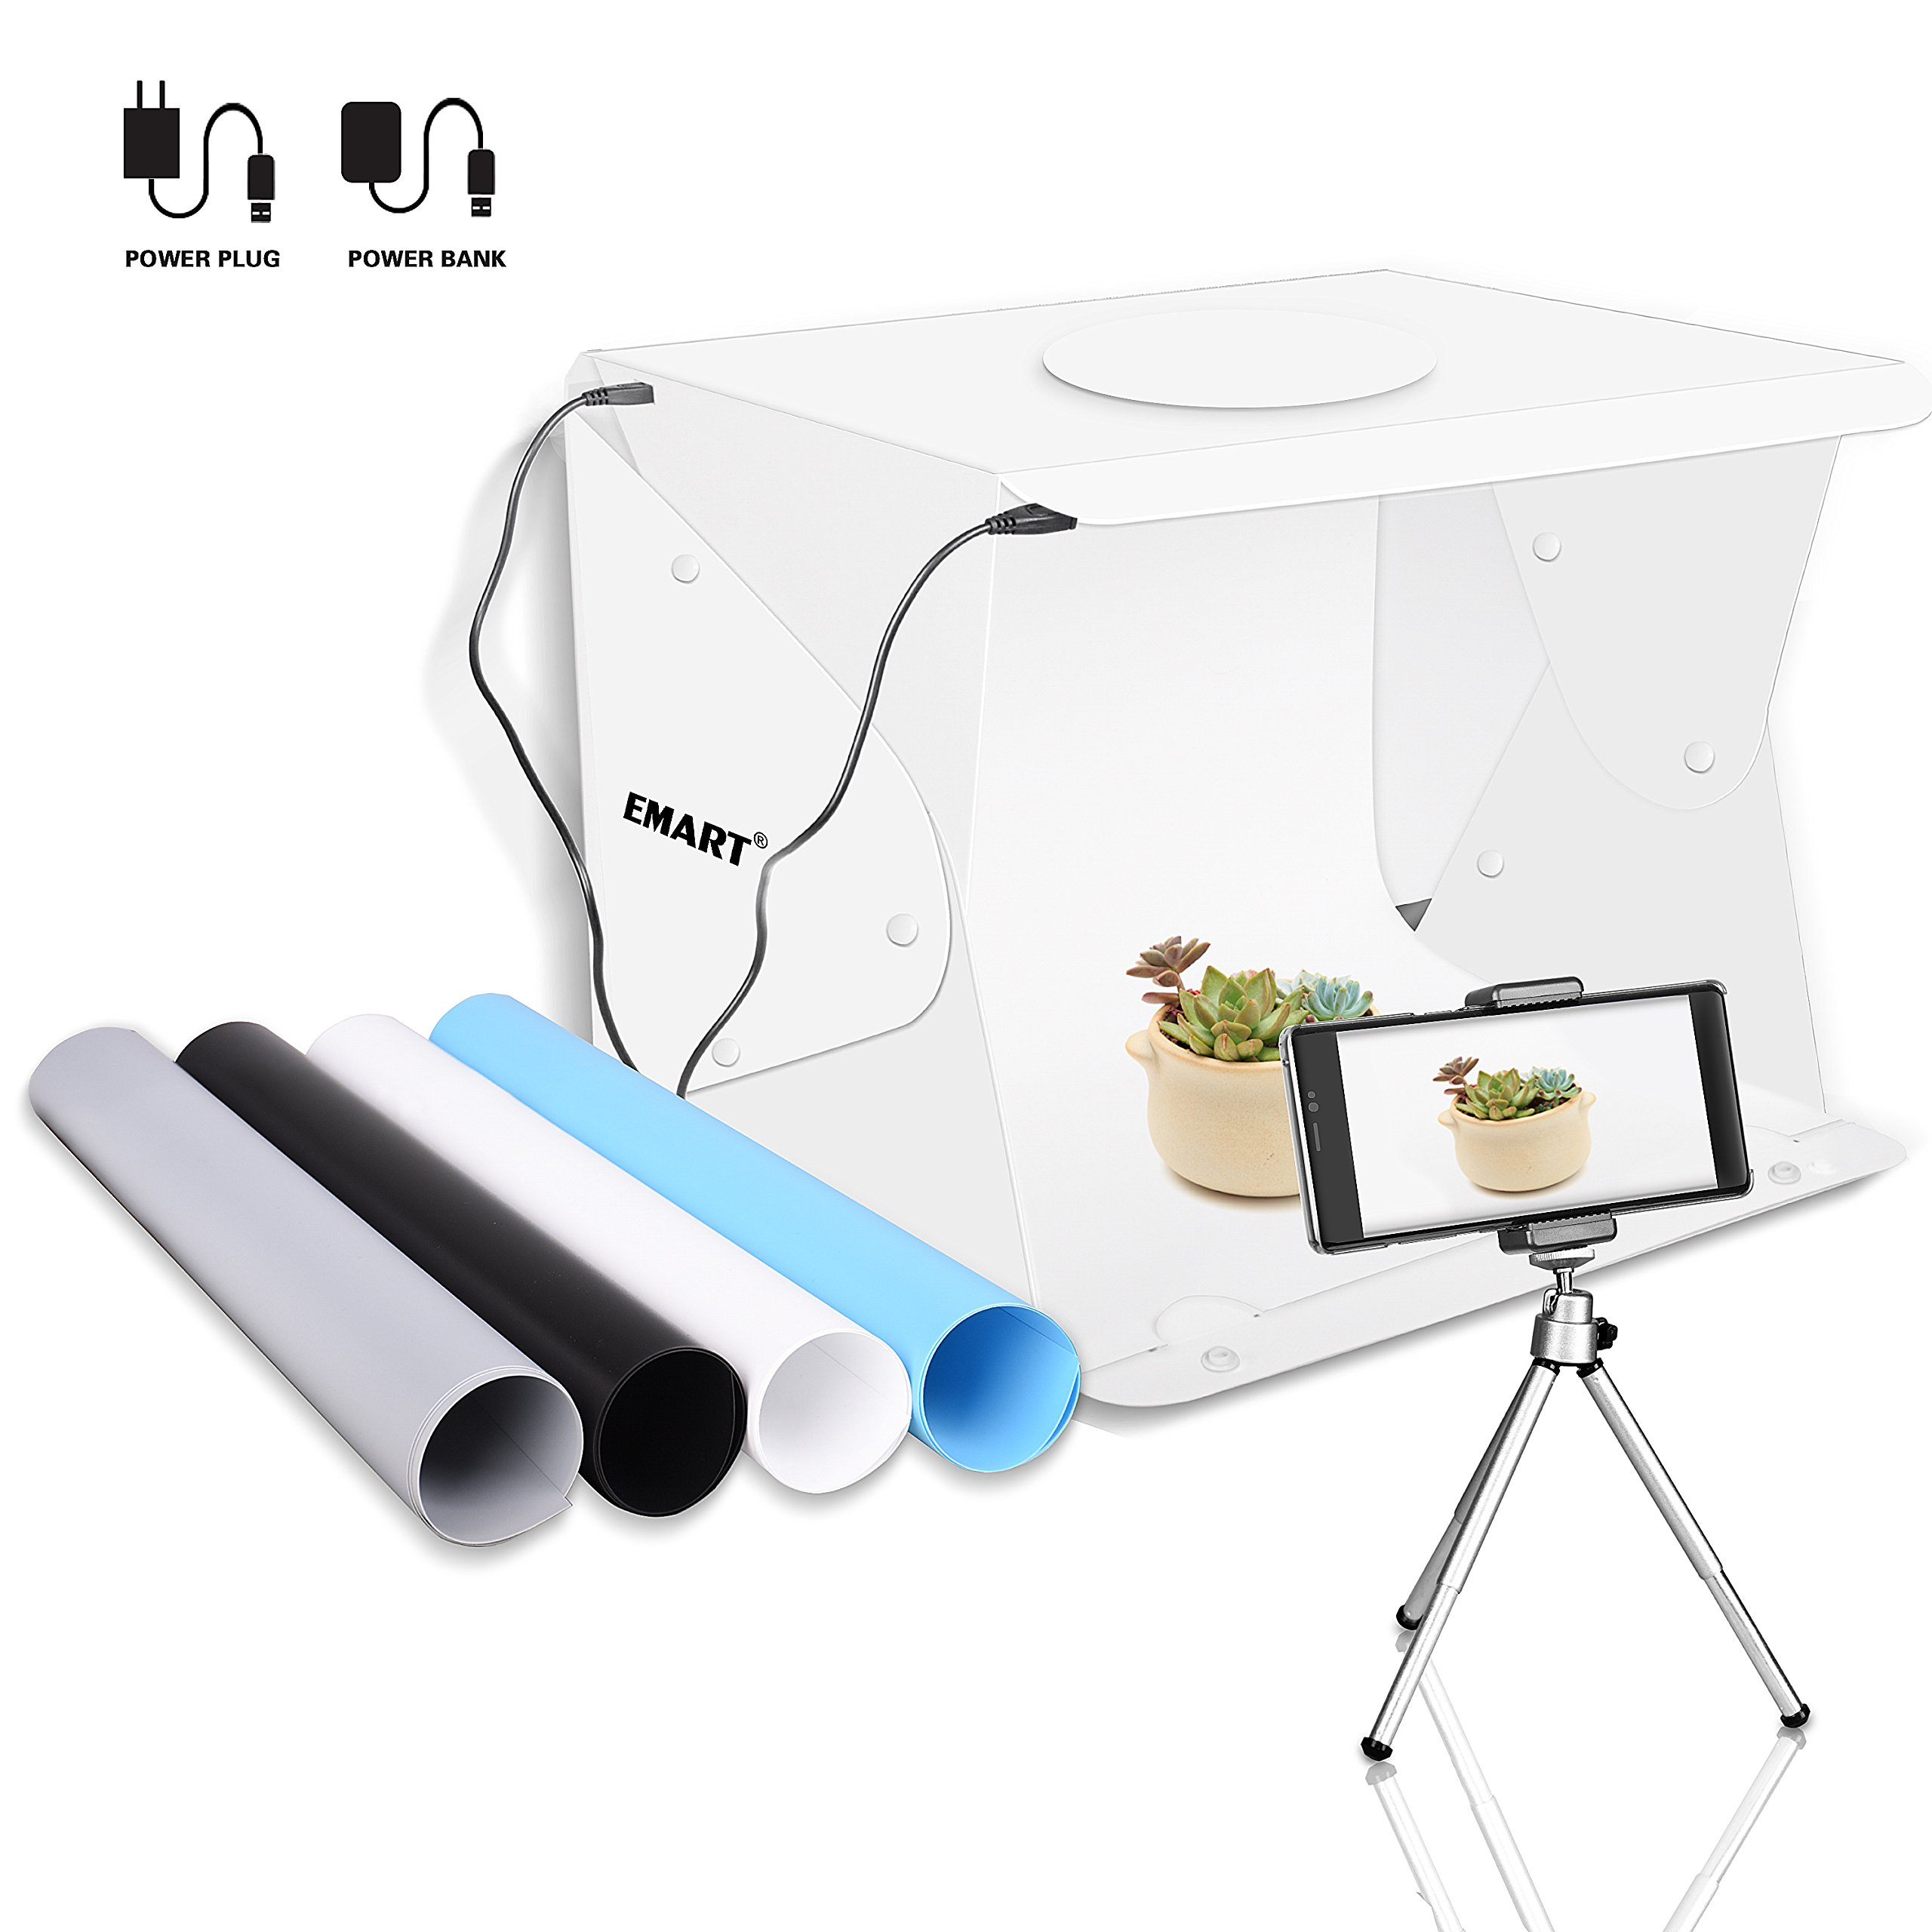 Emart 14'' x 16'' Photography Table Top Light Box 52 LED Portable Photo Studio Shooting Tent by EMART